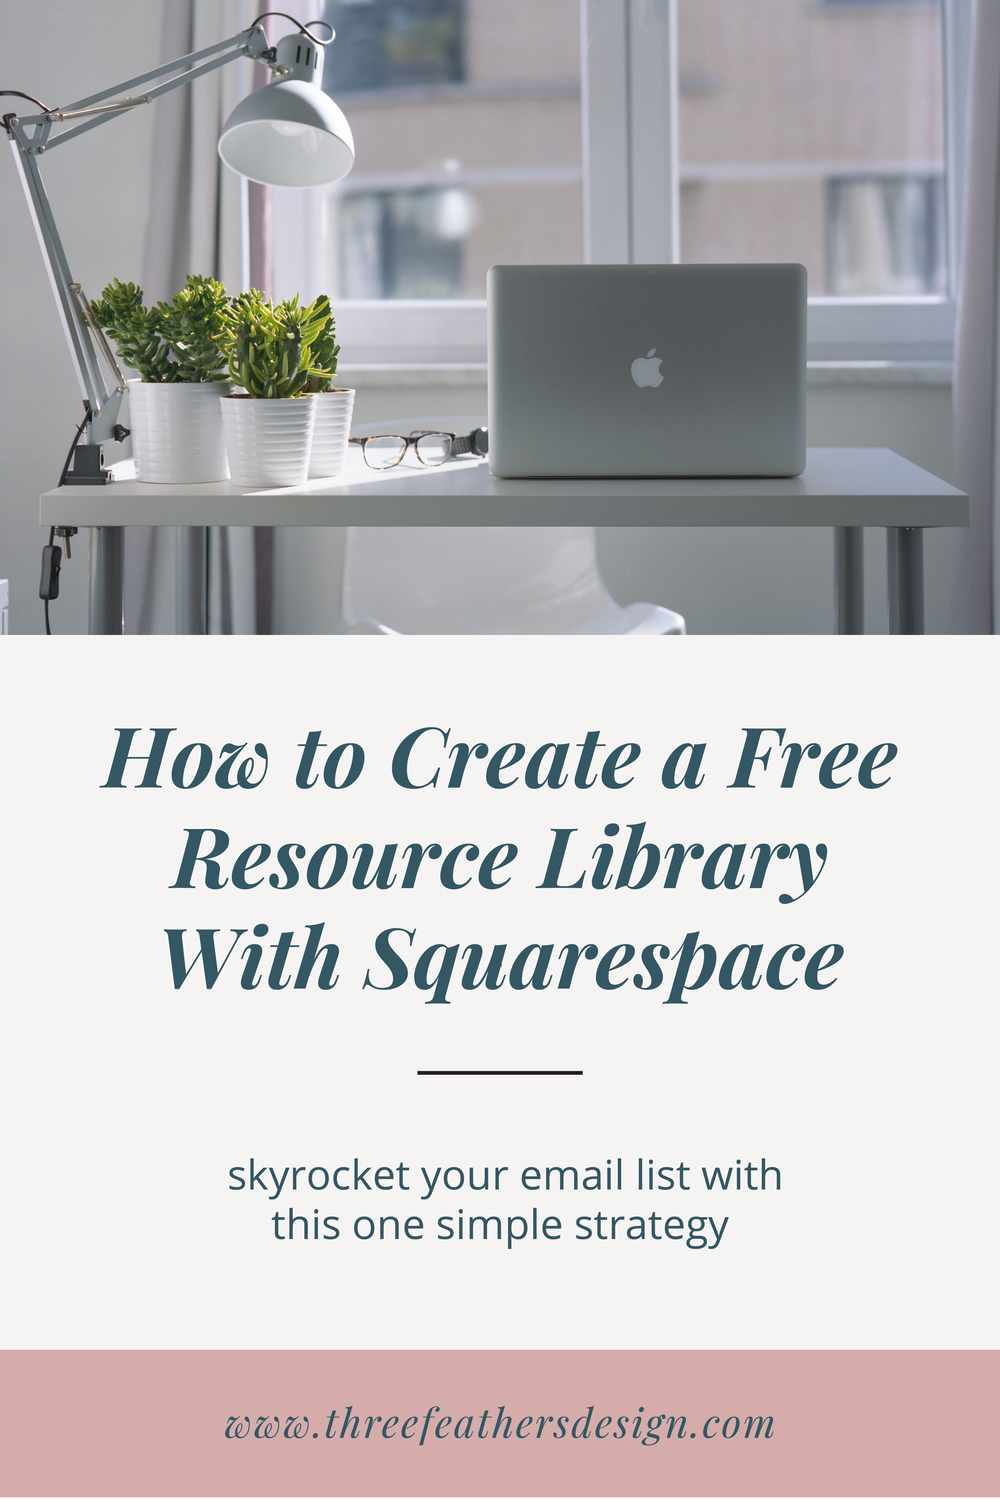 How+to+create+a+free+resource+library+in+Squarespace.png